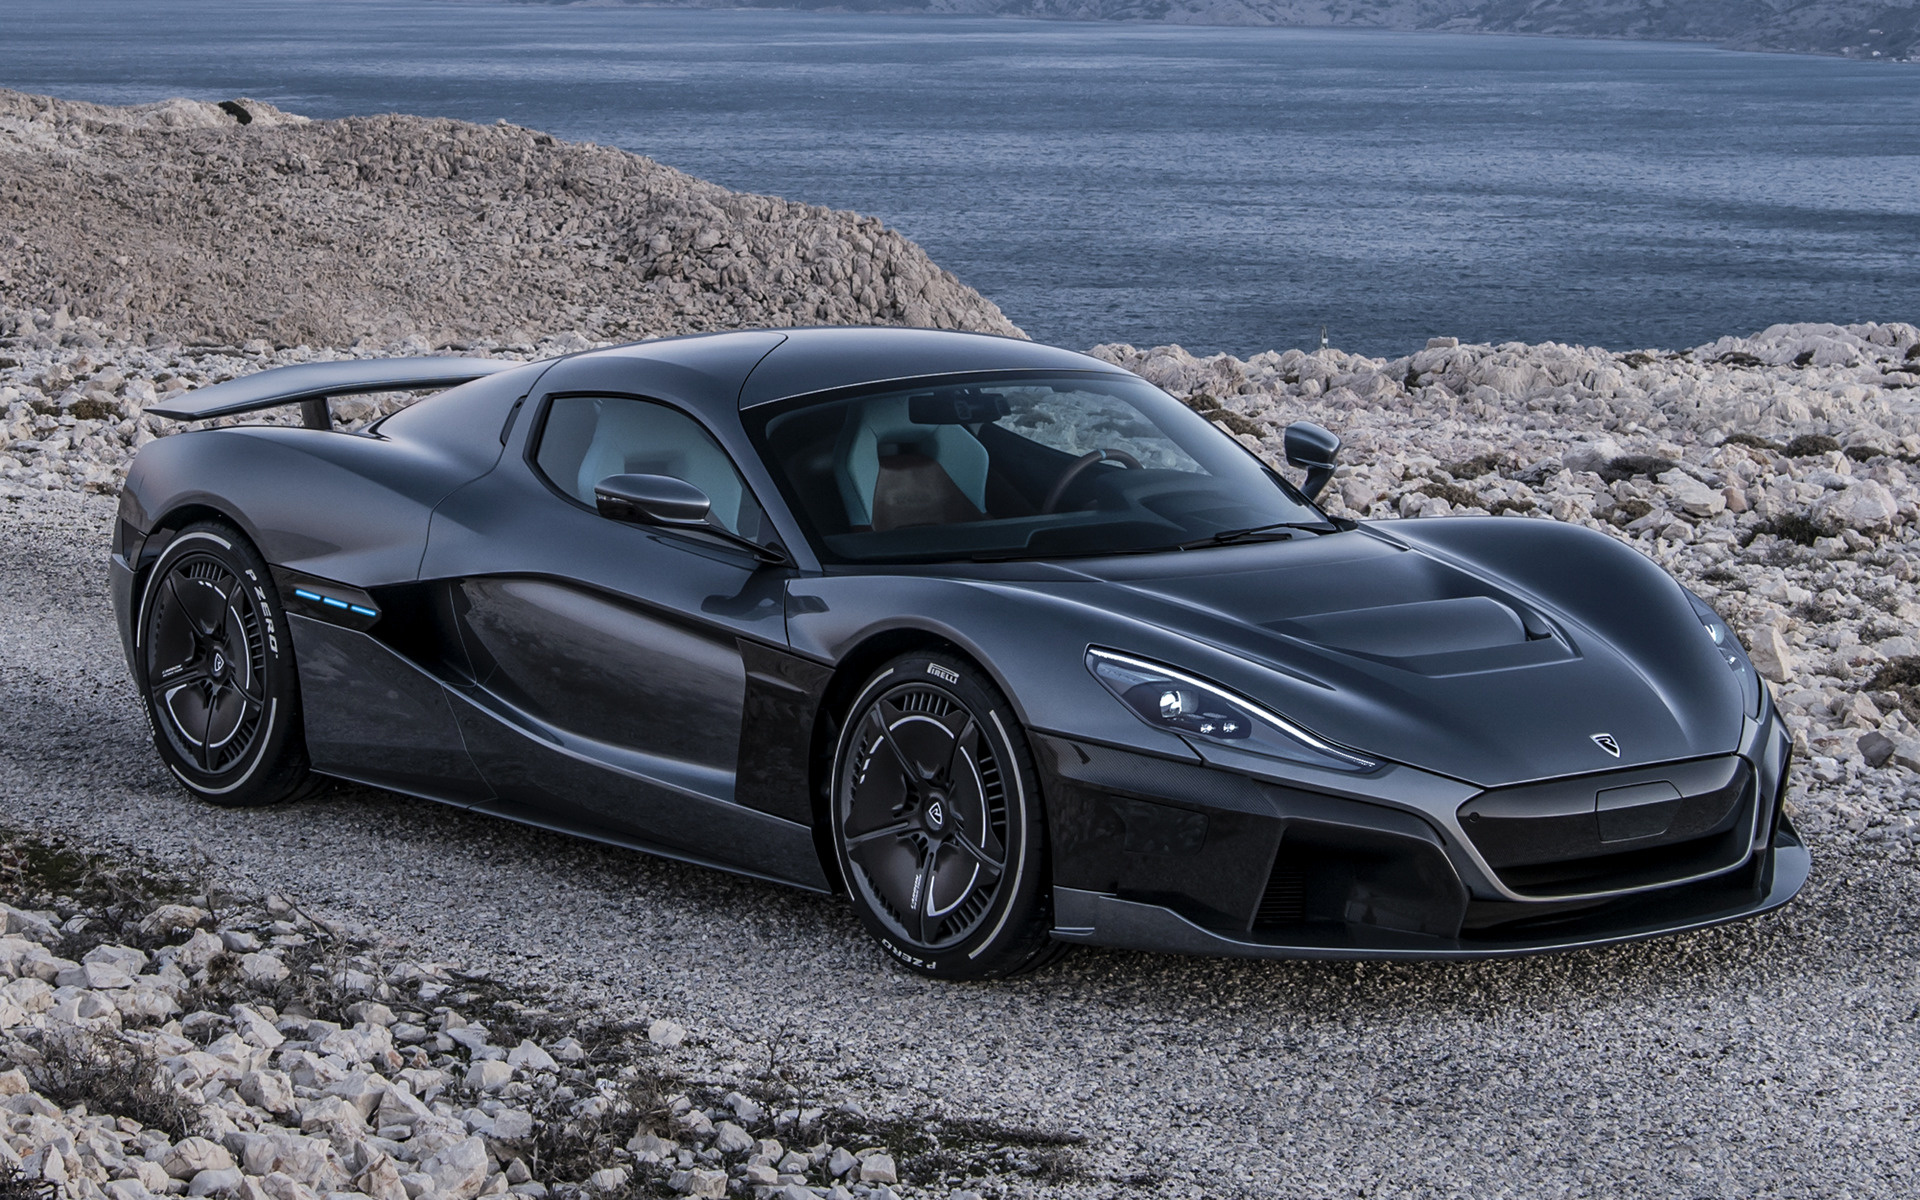 2019 Rimac C_Two - Wallpapers and HD Images | Car Pixel